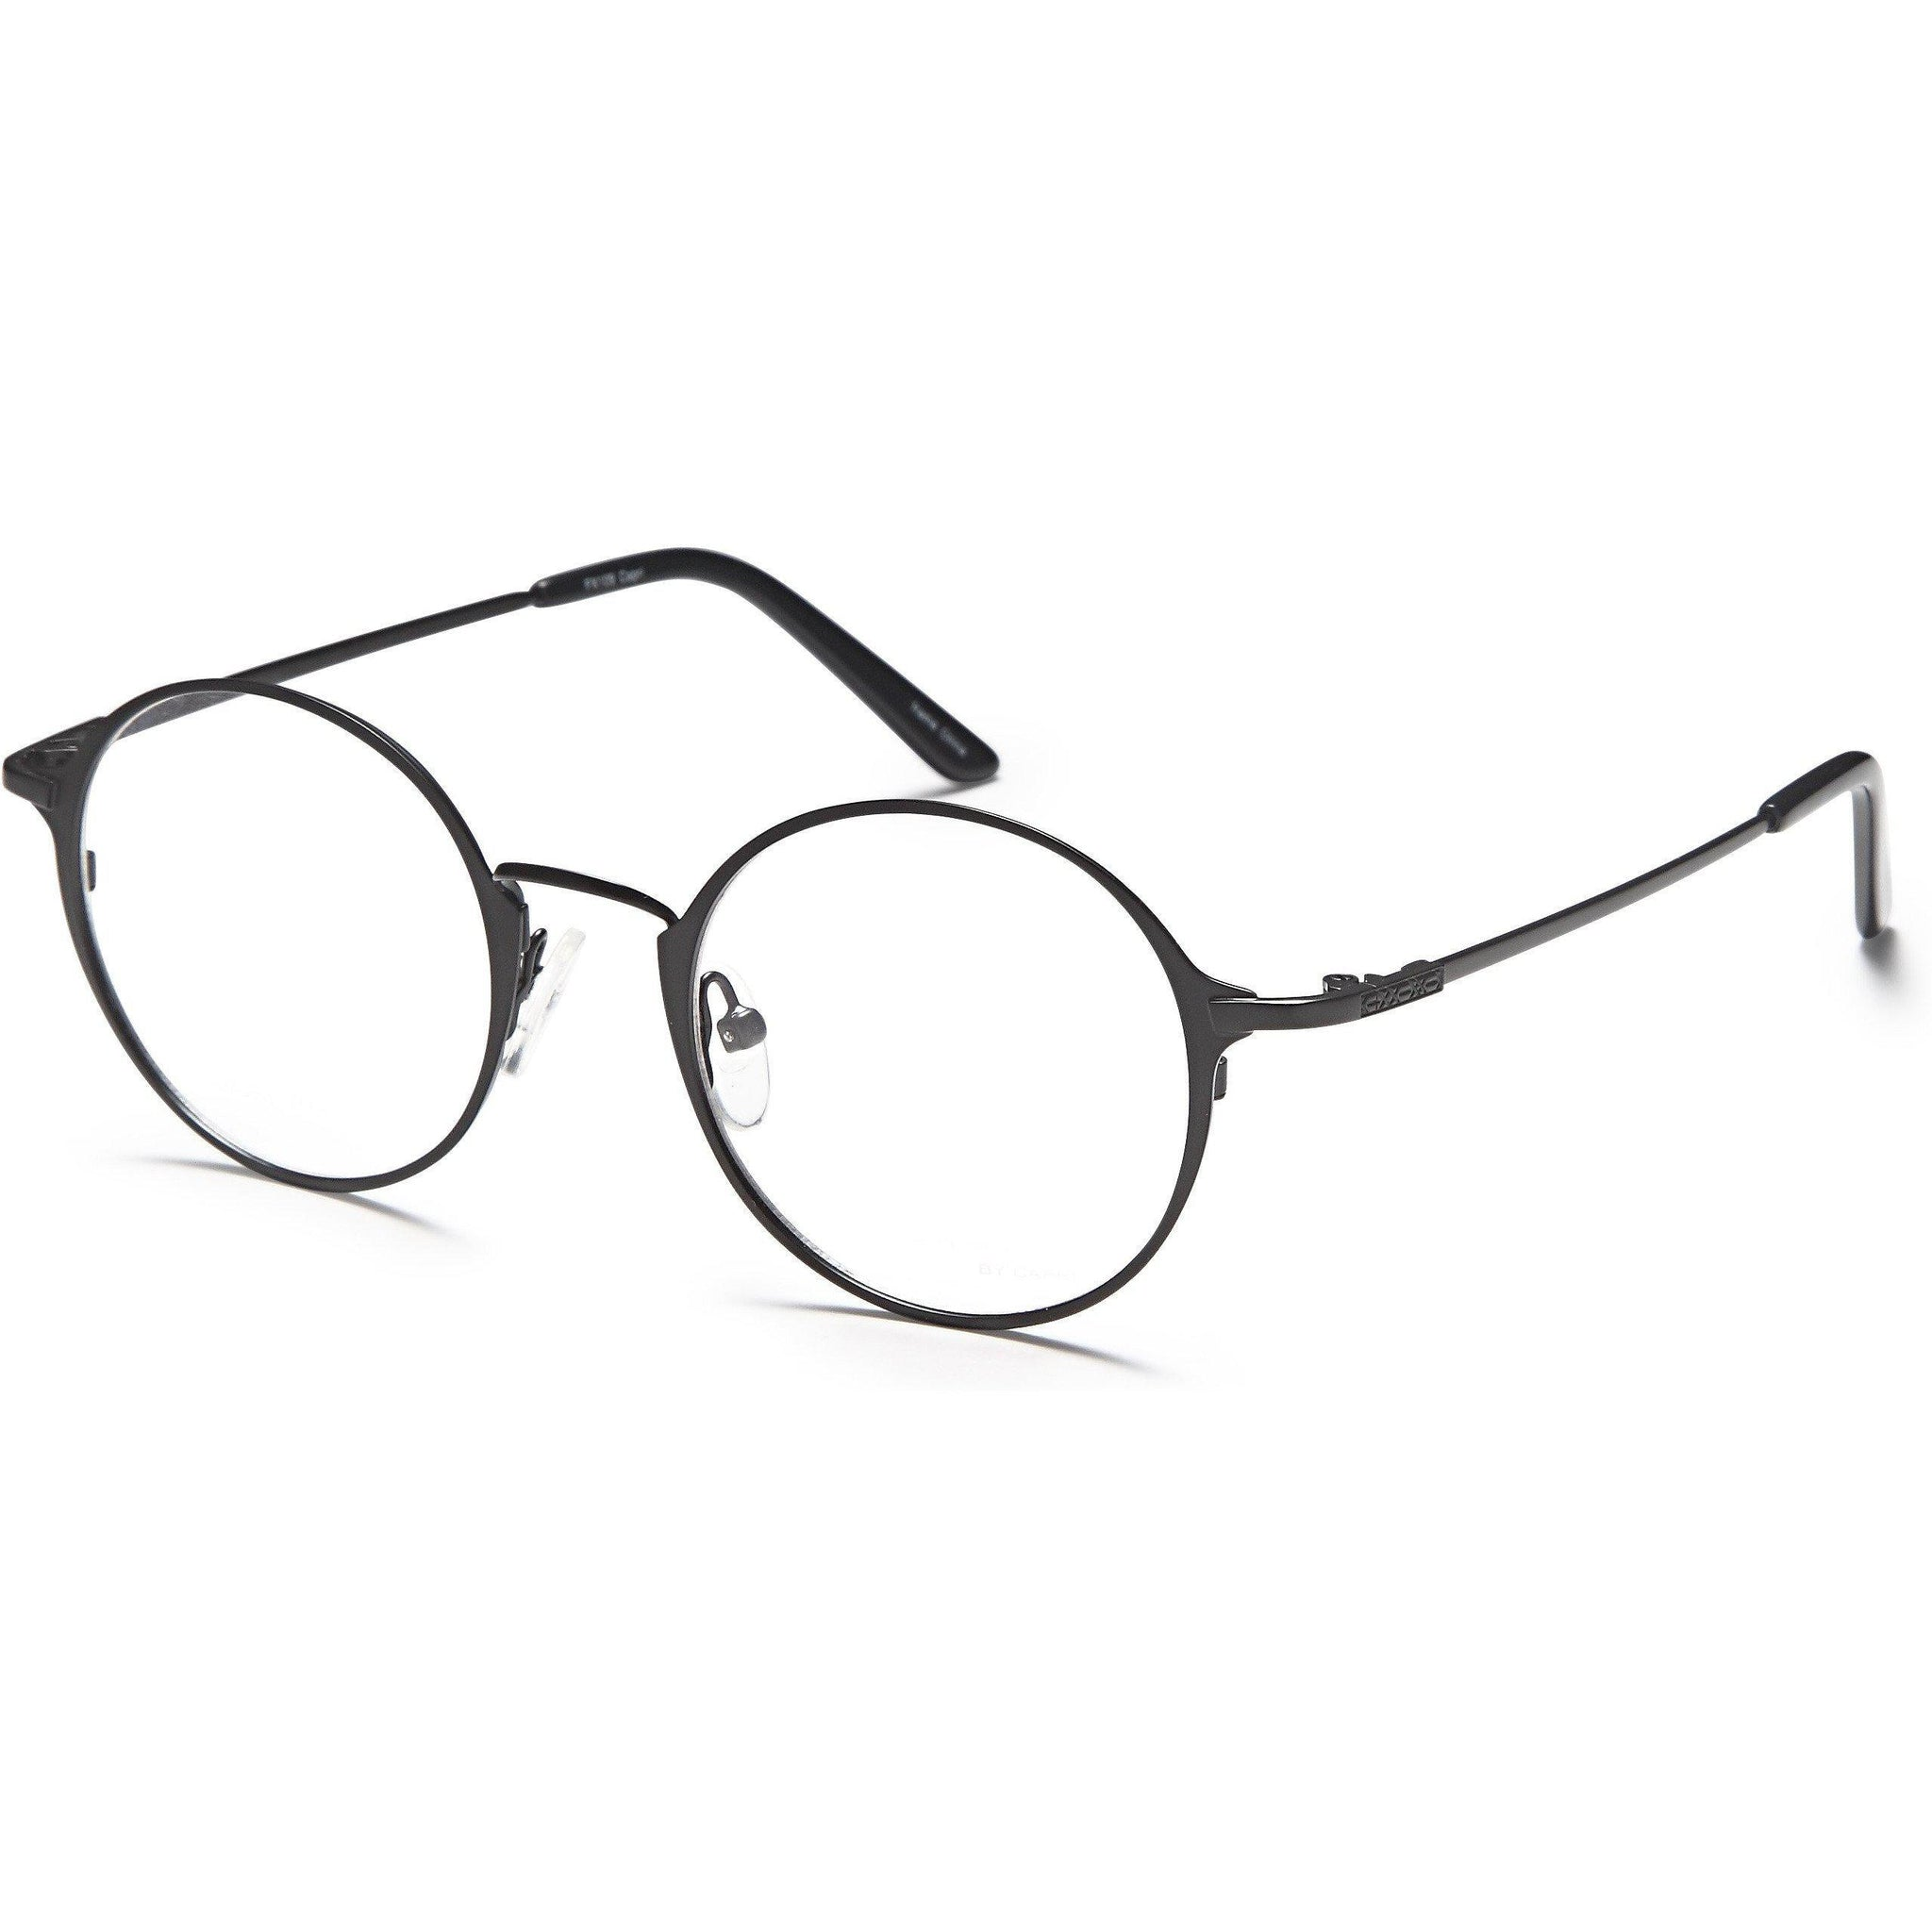 Titanium Prescription Glasses FX 109 Eyeglasses Frame